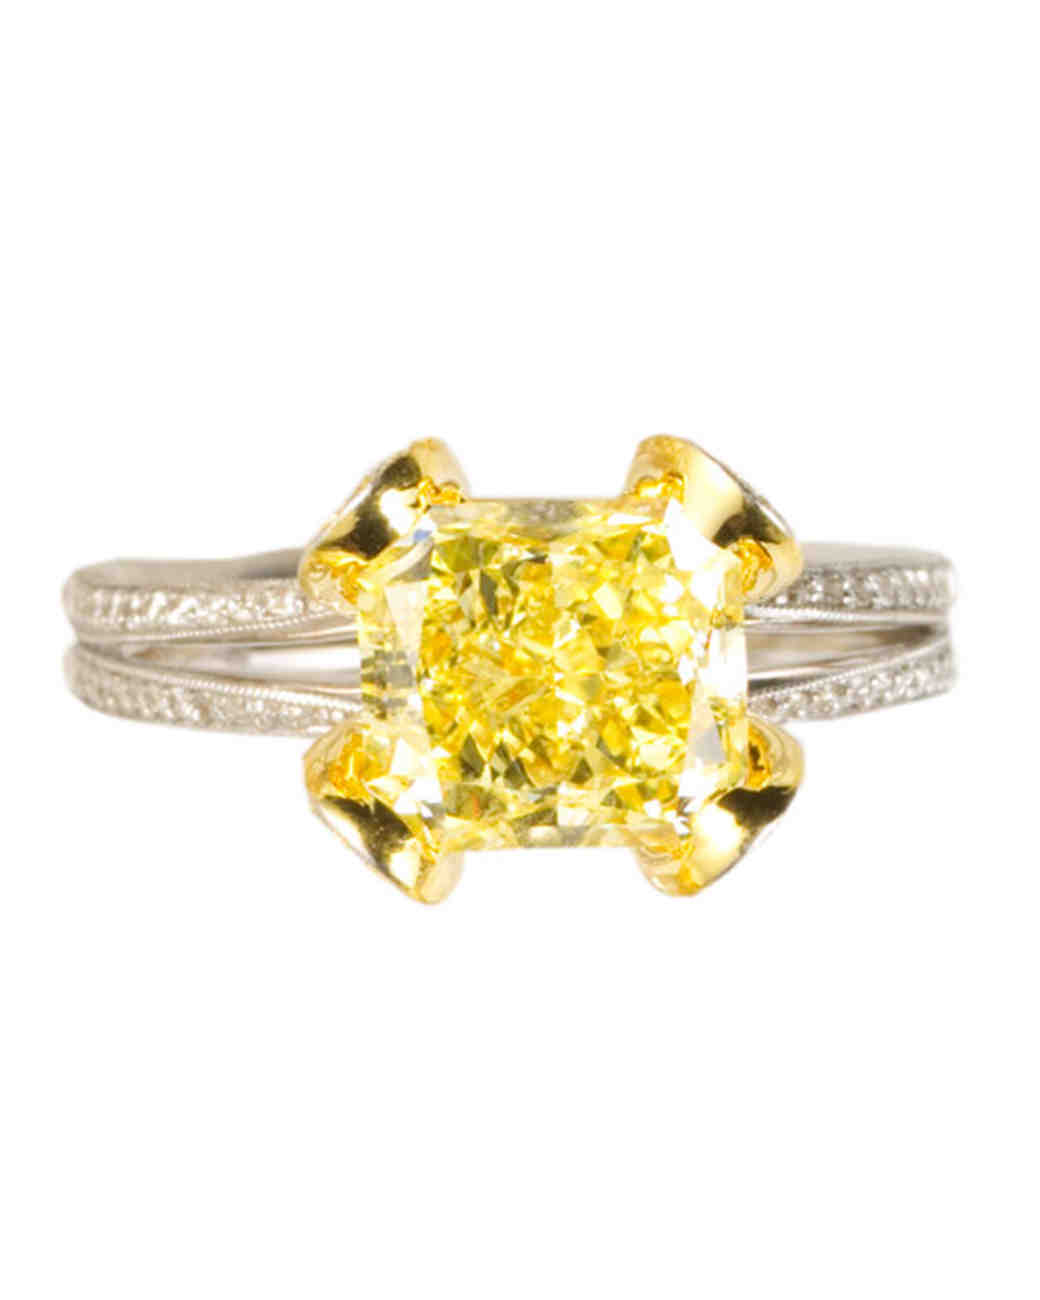 msw_sum10_yellow_ring_christse.jpg